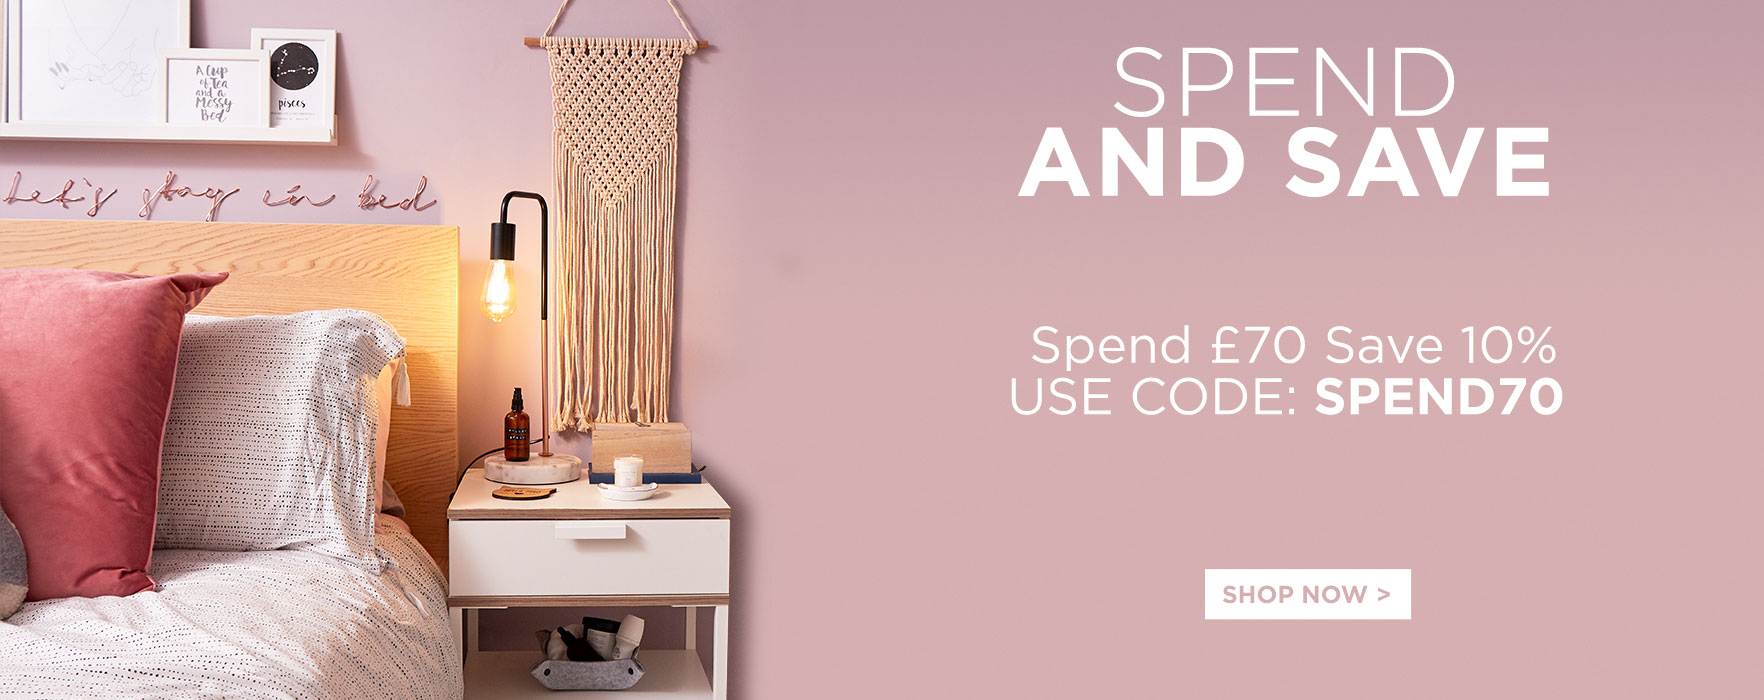 Spend And Save - Spend £70 Save 10%